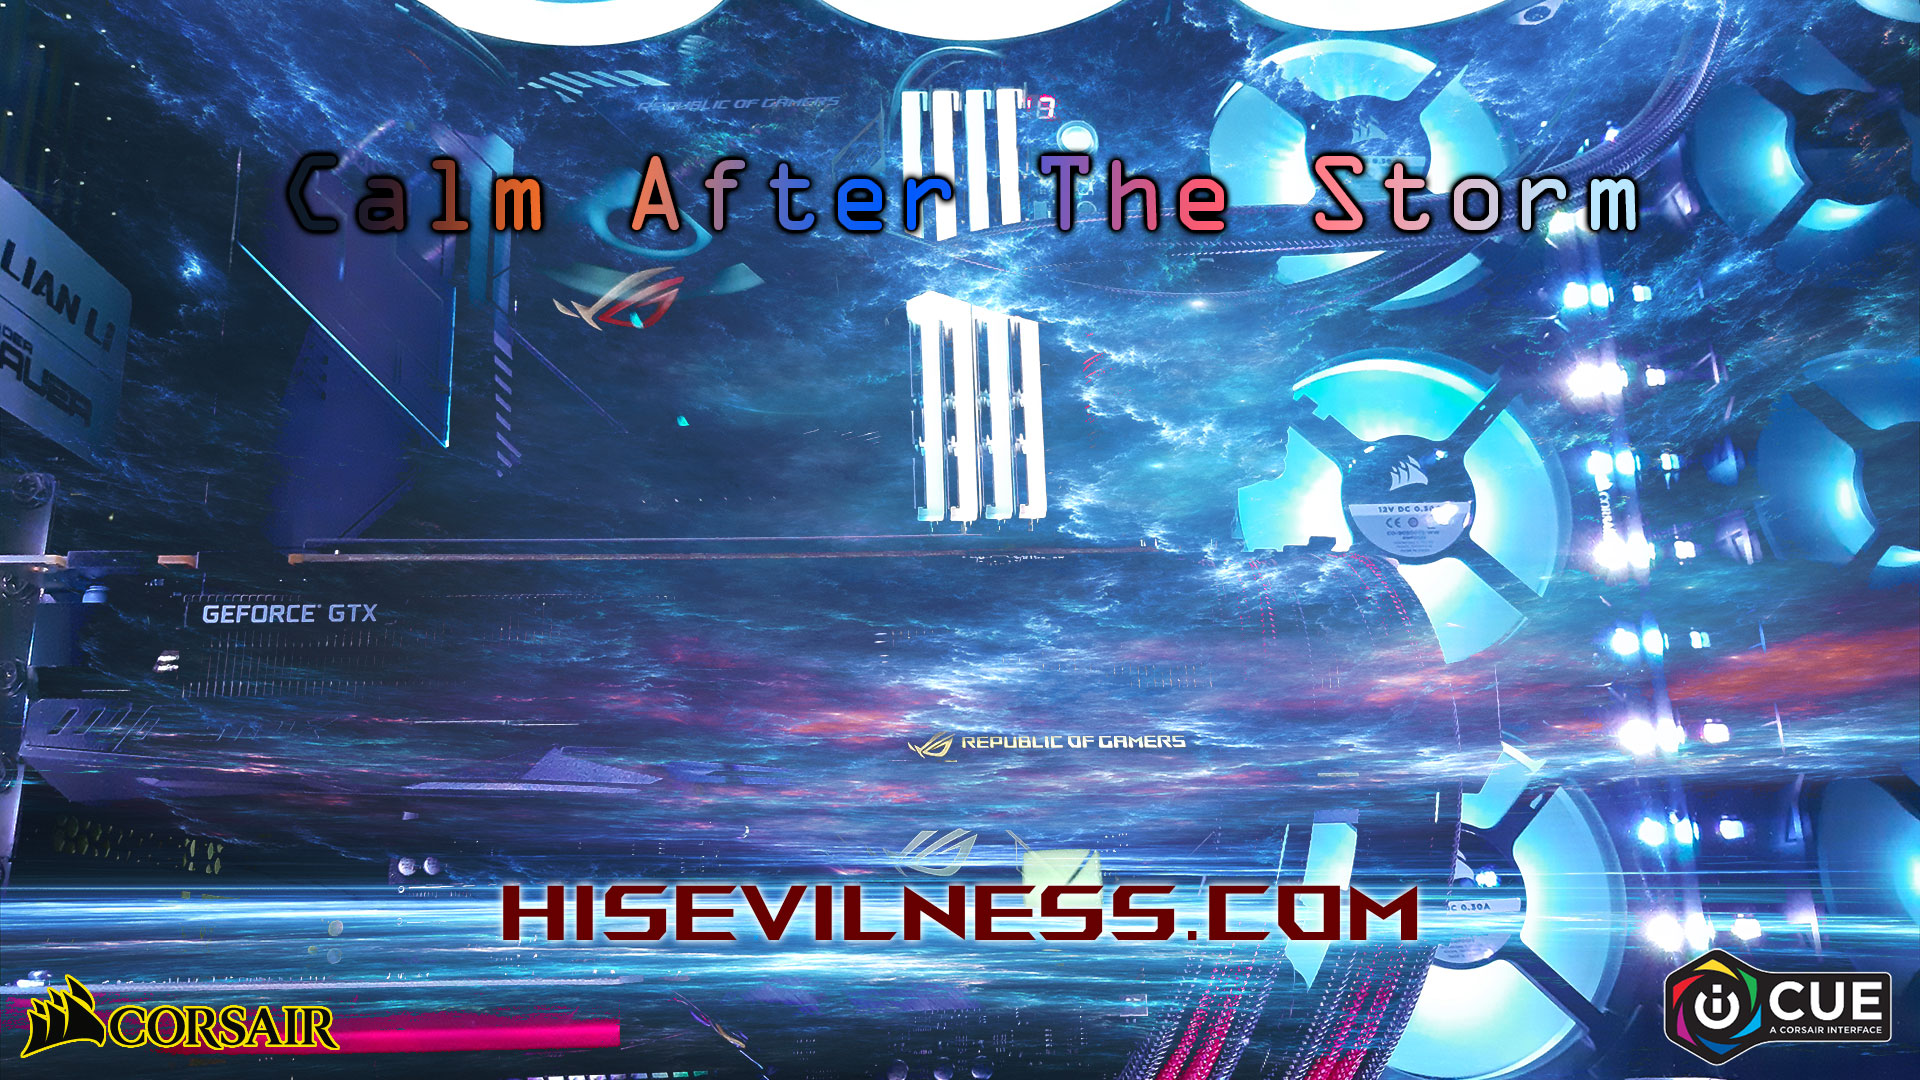 Evil's Personal Palace - HisEvilness - Paul Ripmeester - Calm After